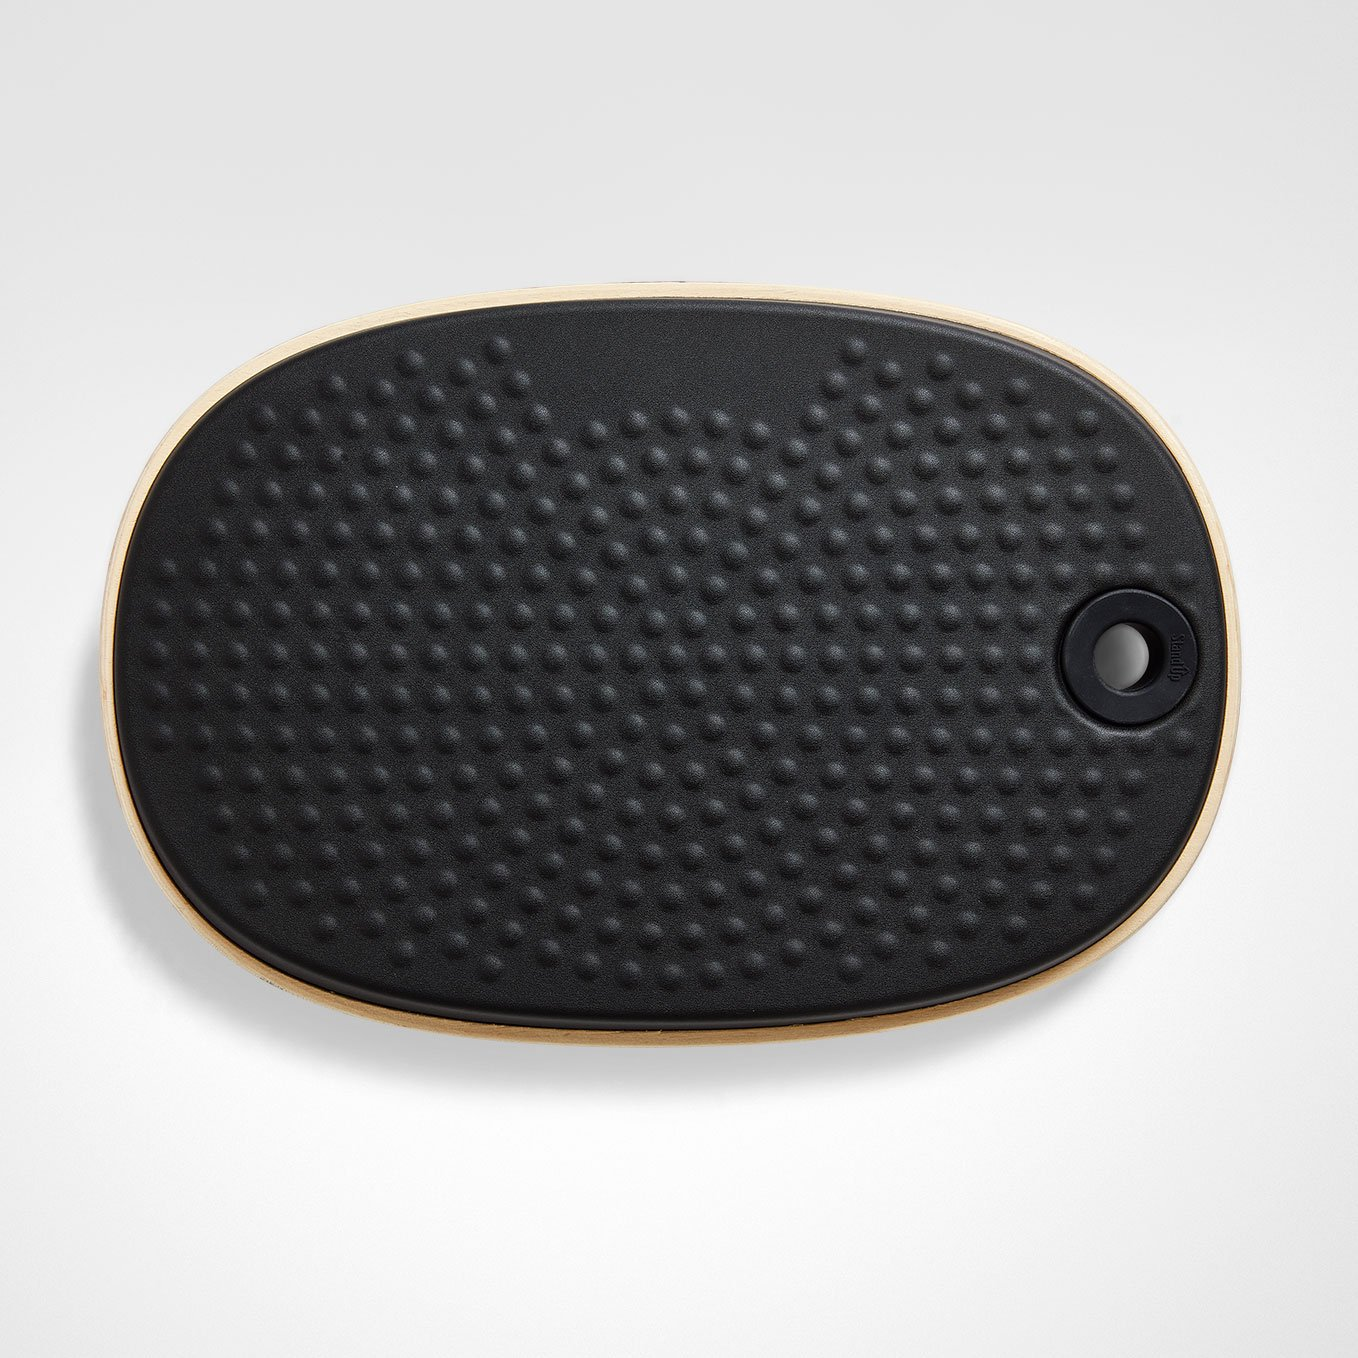 STANDUP ACTIVE BALANCE BOARD